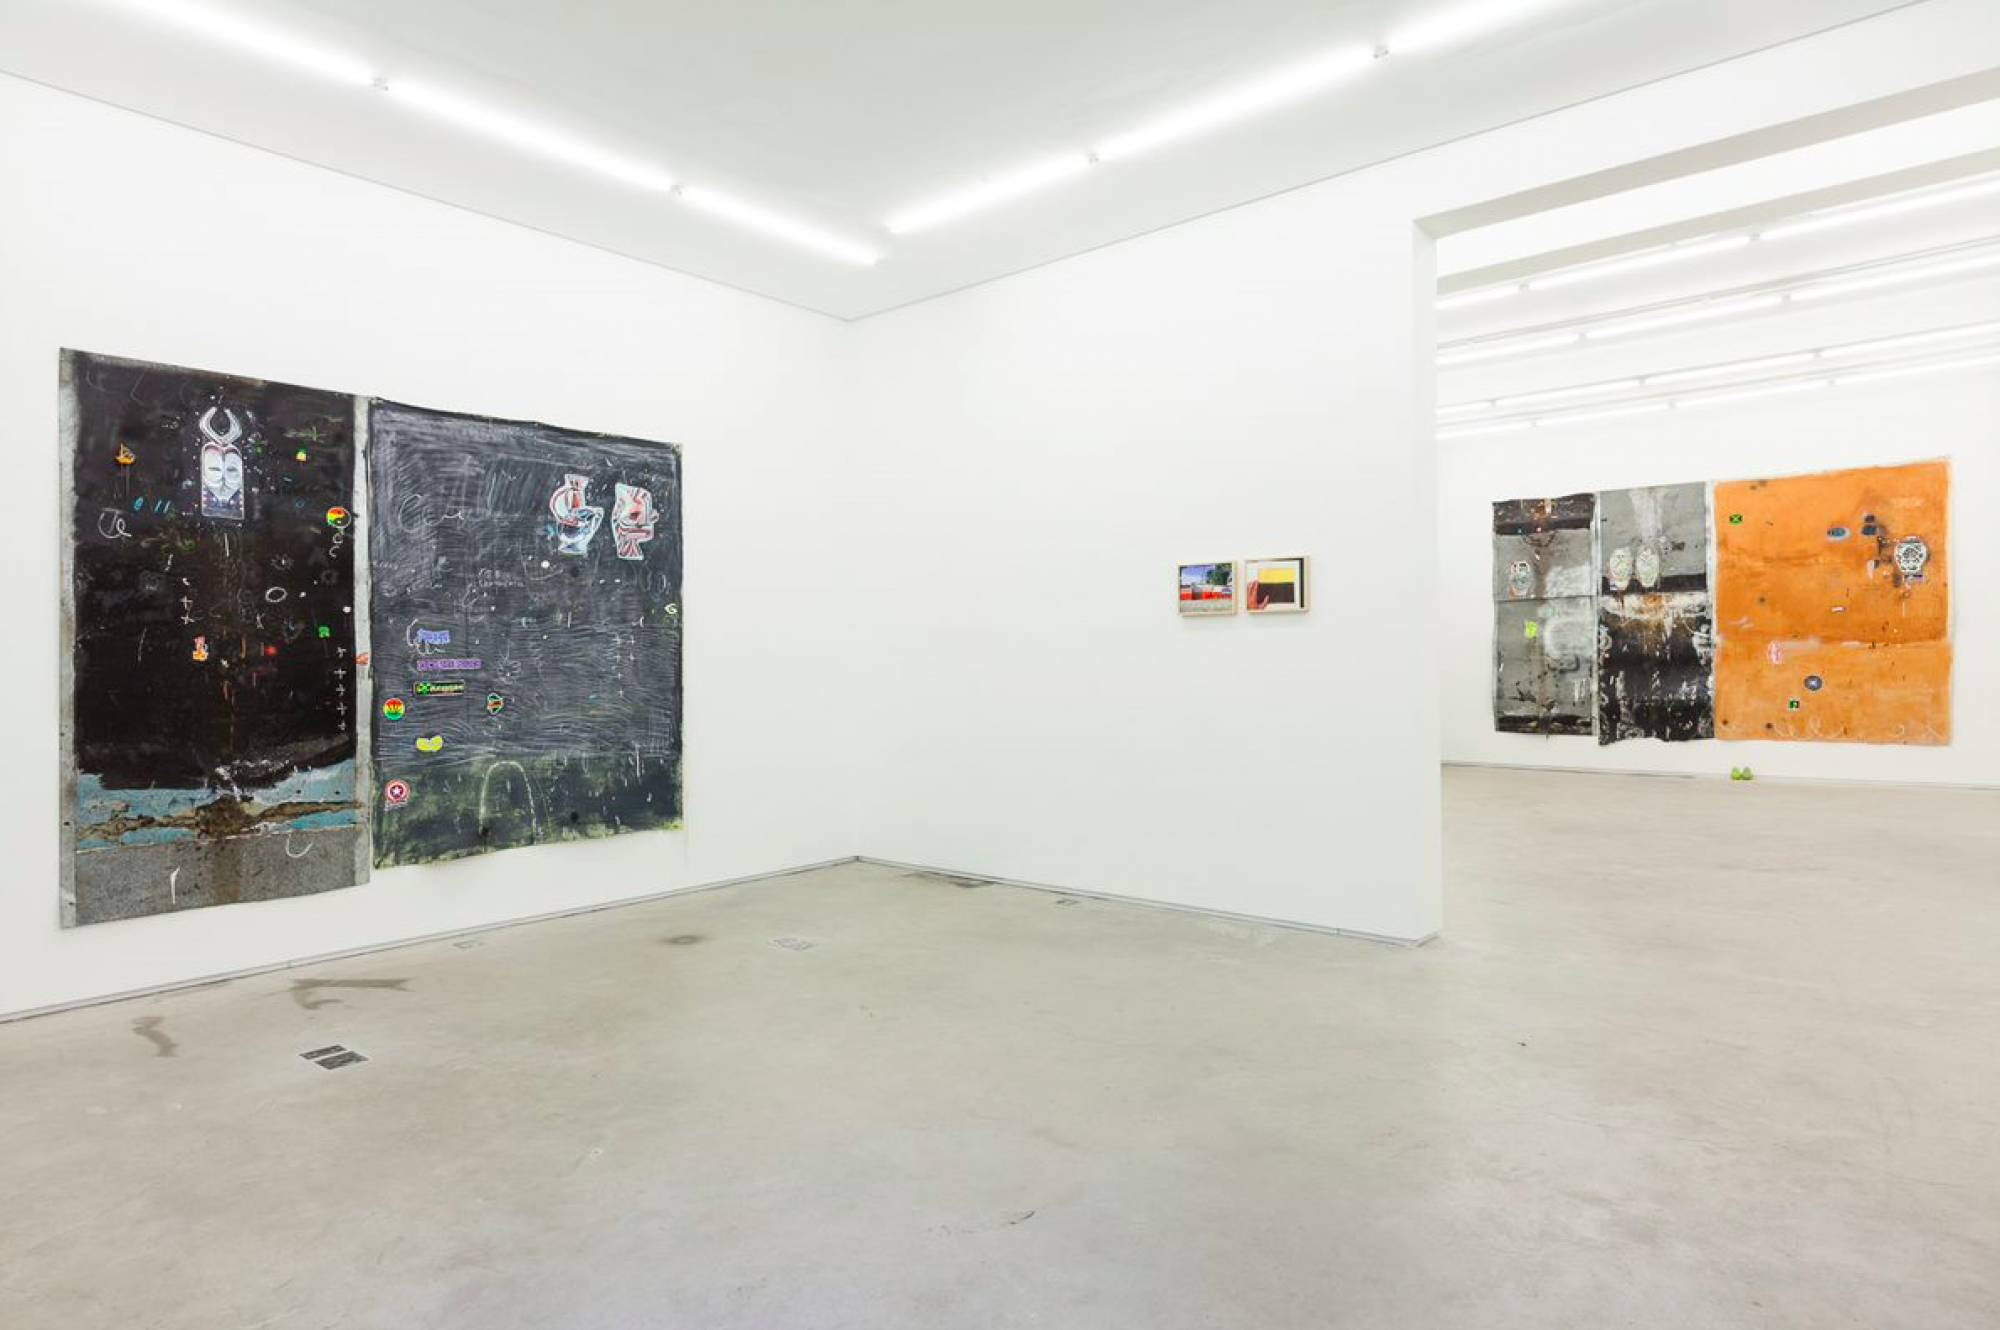 Paulo Nimer Pjota, <em>Synthesis between contradictory ideas and the plurality of the object as image I</em>, Mendes Wood DM São Paulo, 2016 - Mendes Wood DM